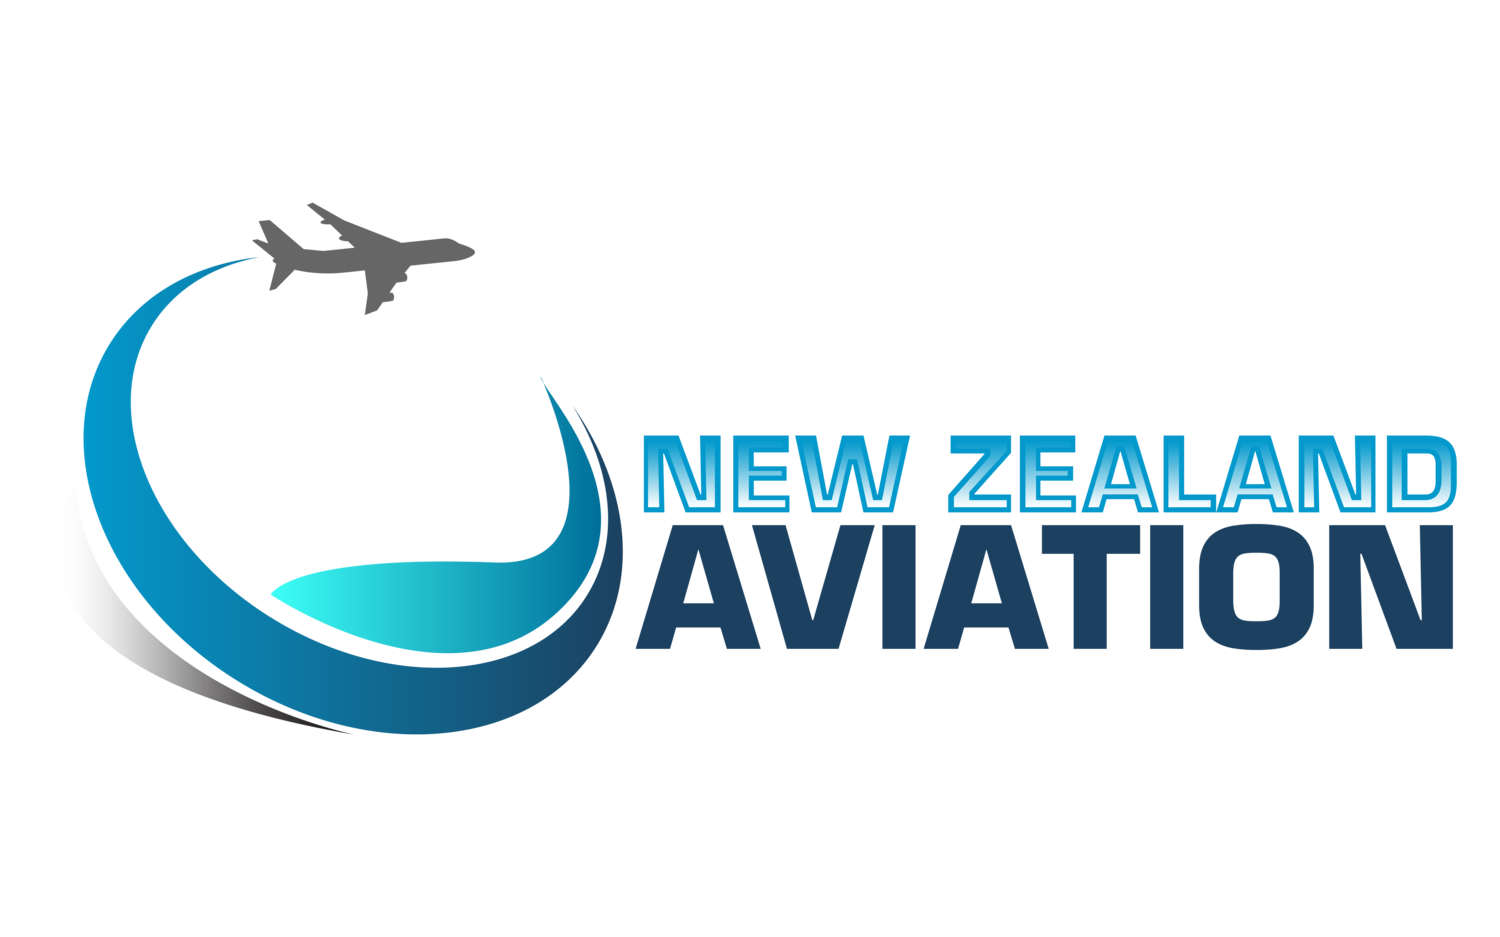 New Zealand Aviation